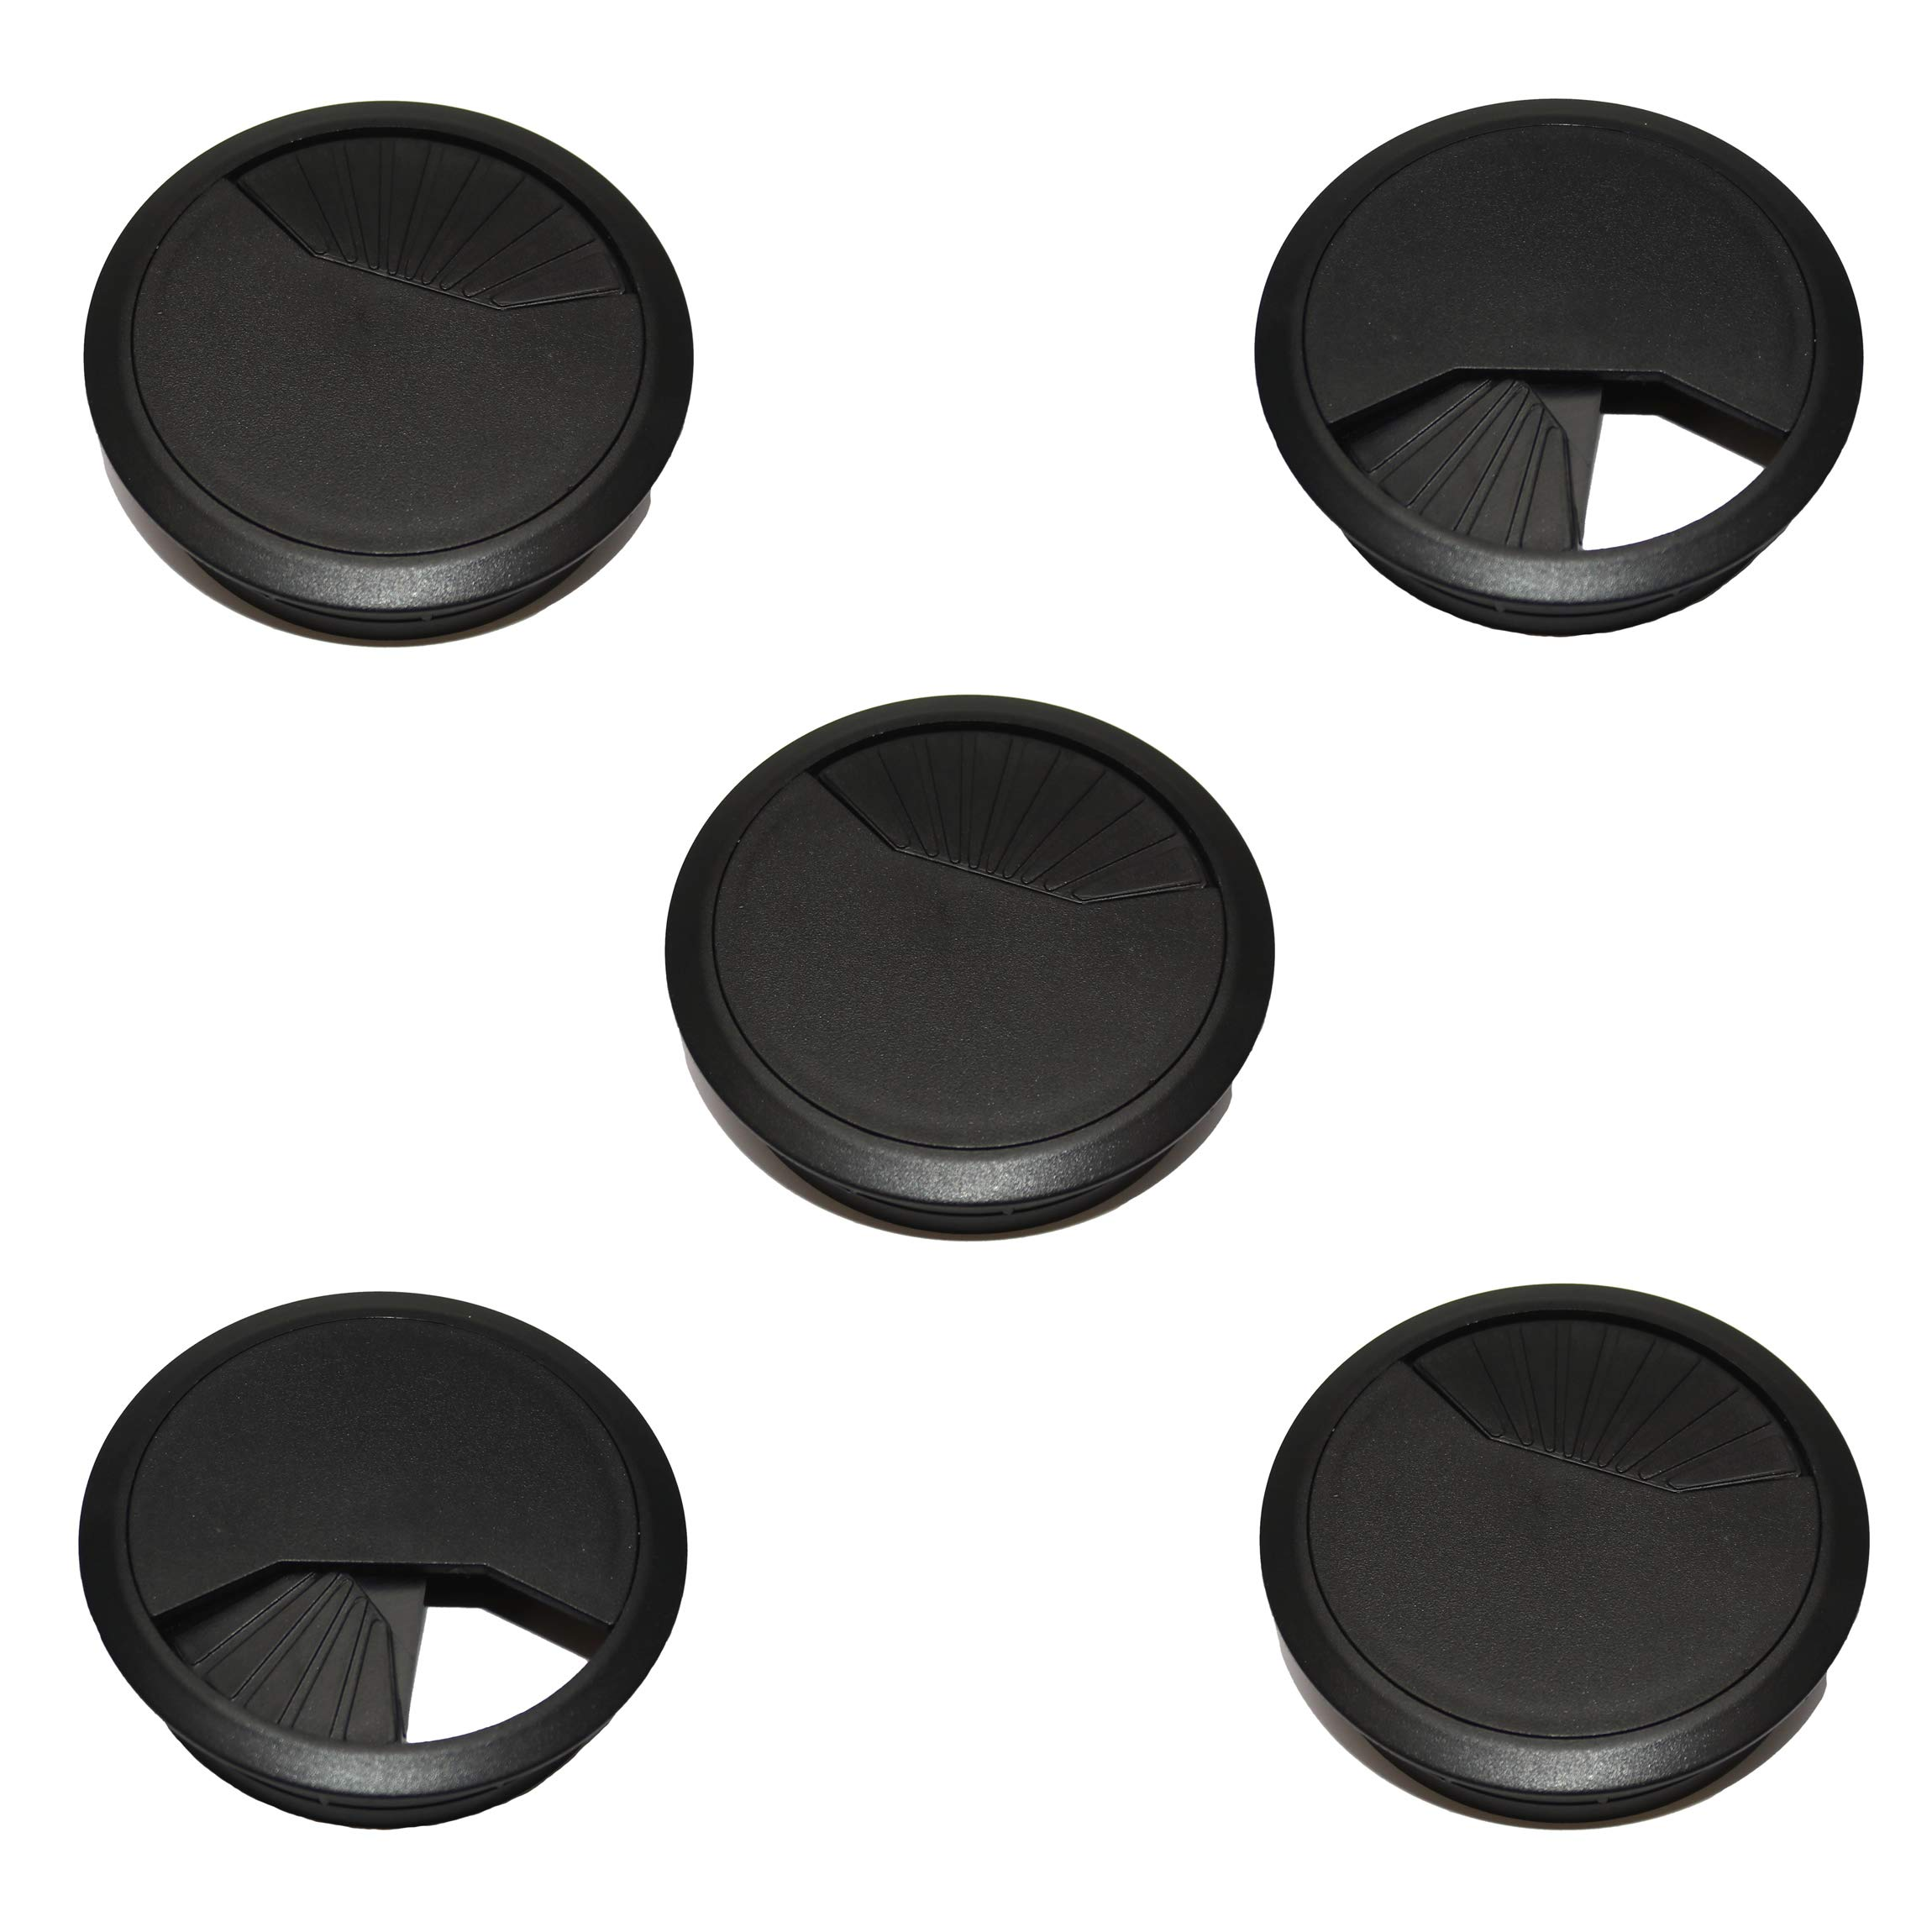 TCH Hardware 5 Pack Desk Cable Grommet 3 1/8'' Black Plastic - Office Computer Table Wire Cover by TCH (Image #1)